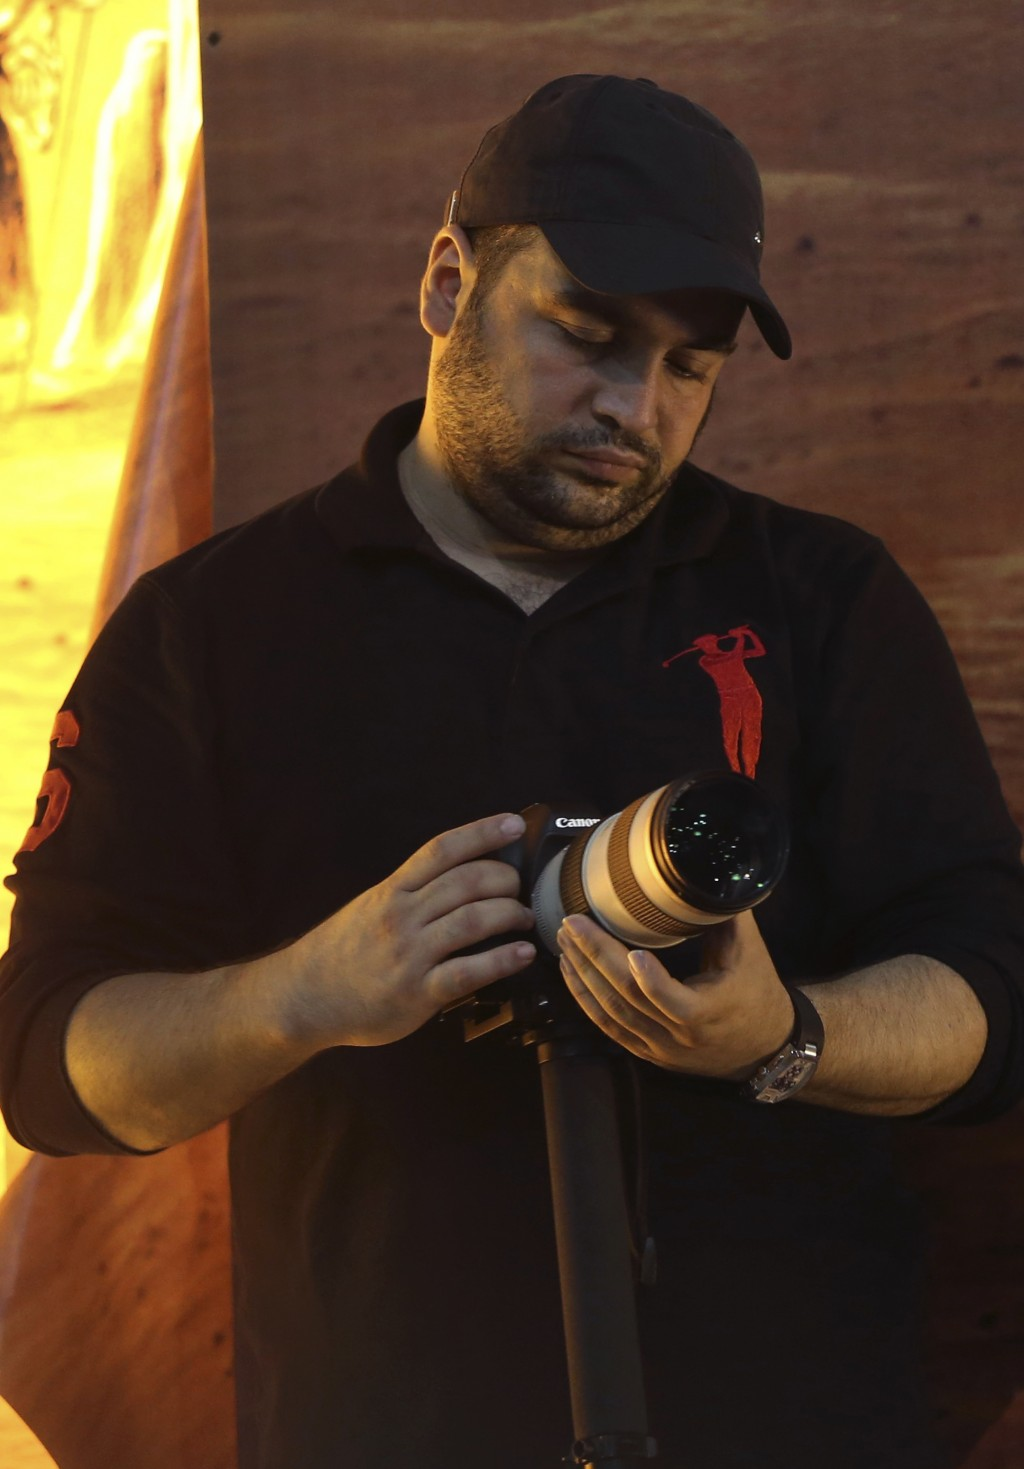 In this Nov. 3, 2014 photo, Jawad Nasrallah, the second eldest son of of Hezbollah leader Sheikh Hassan Nasrallah, adjusts his camera during a speech